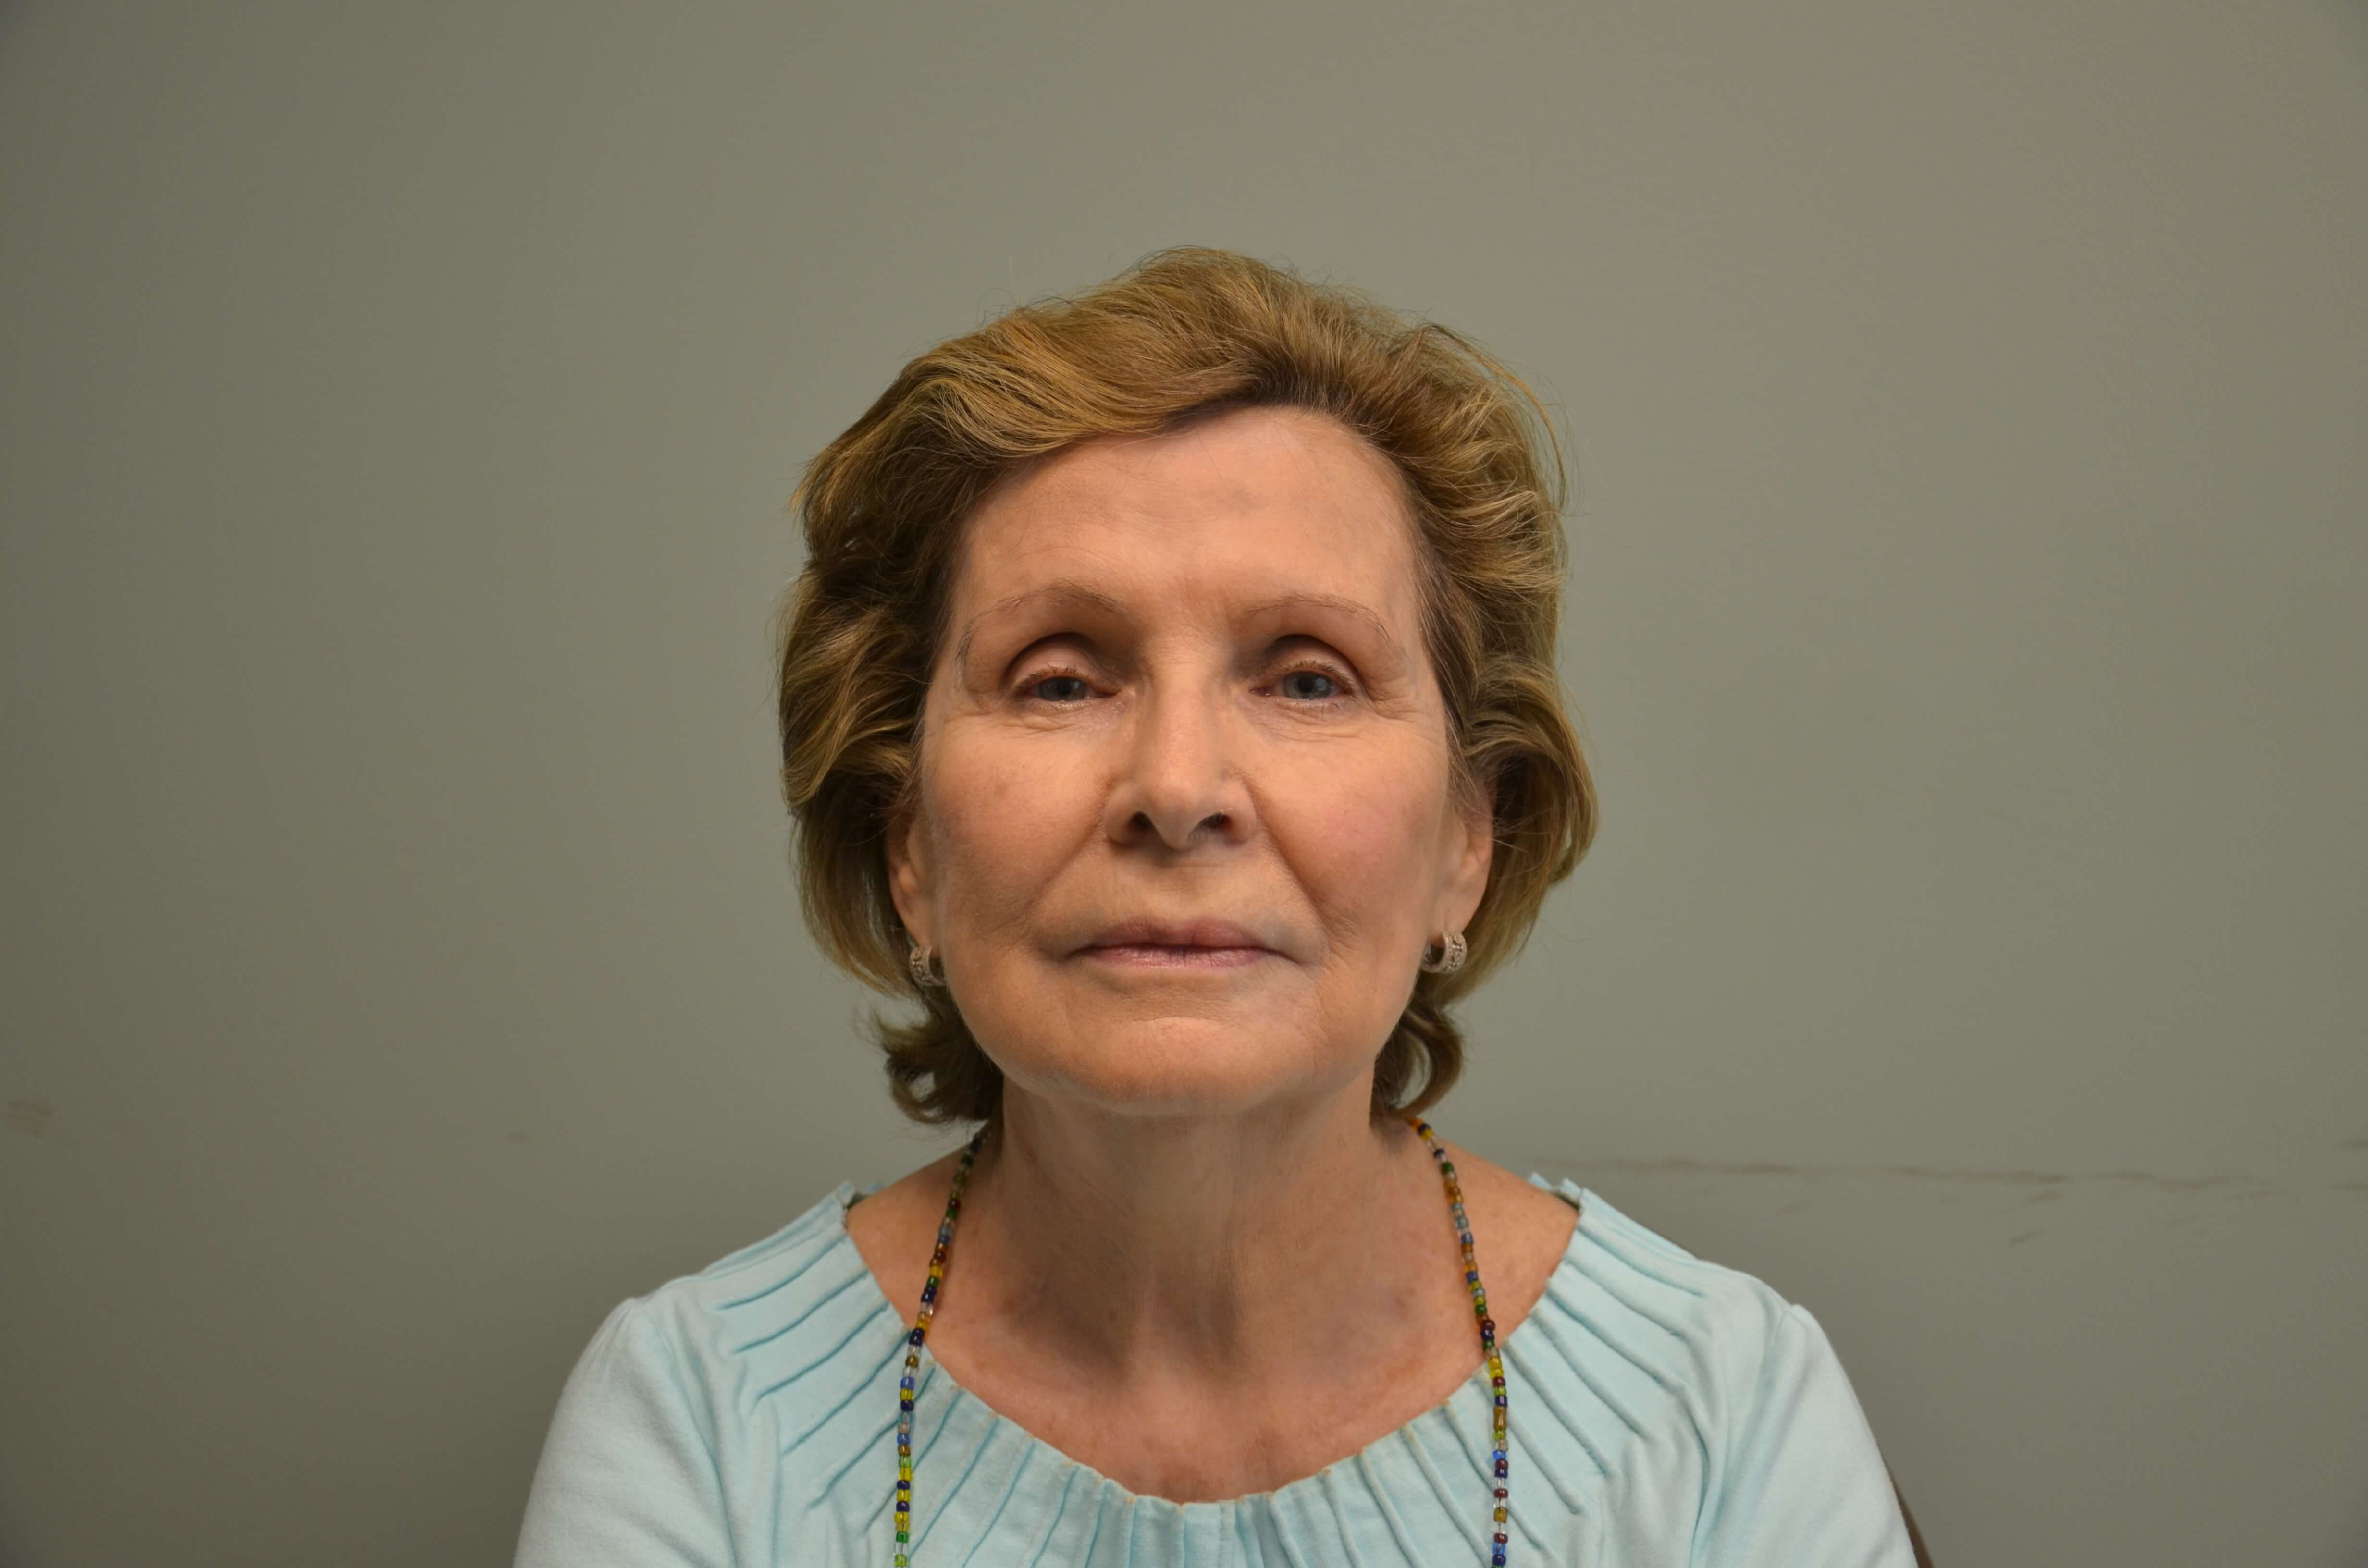 79 yo WF Completes Neck Lift Before